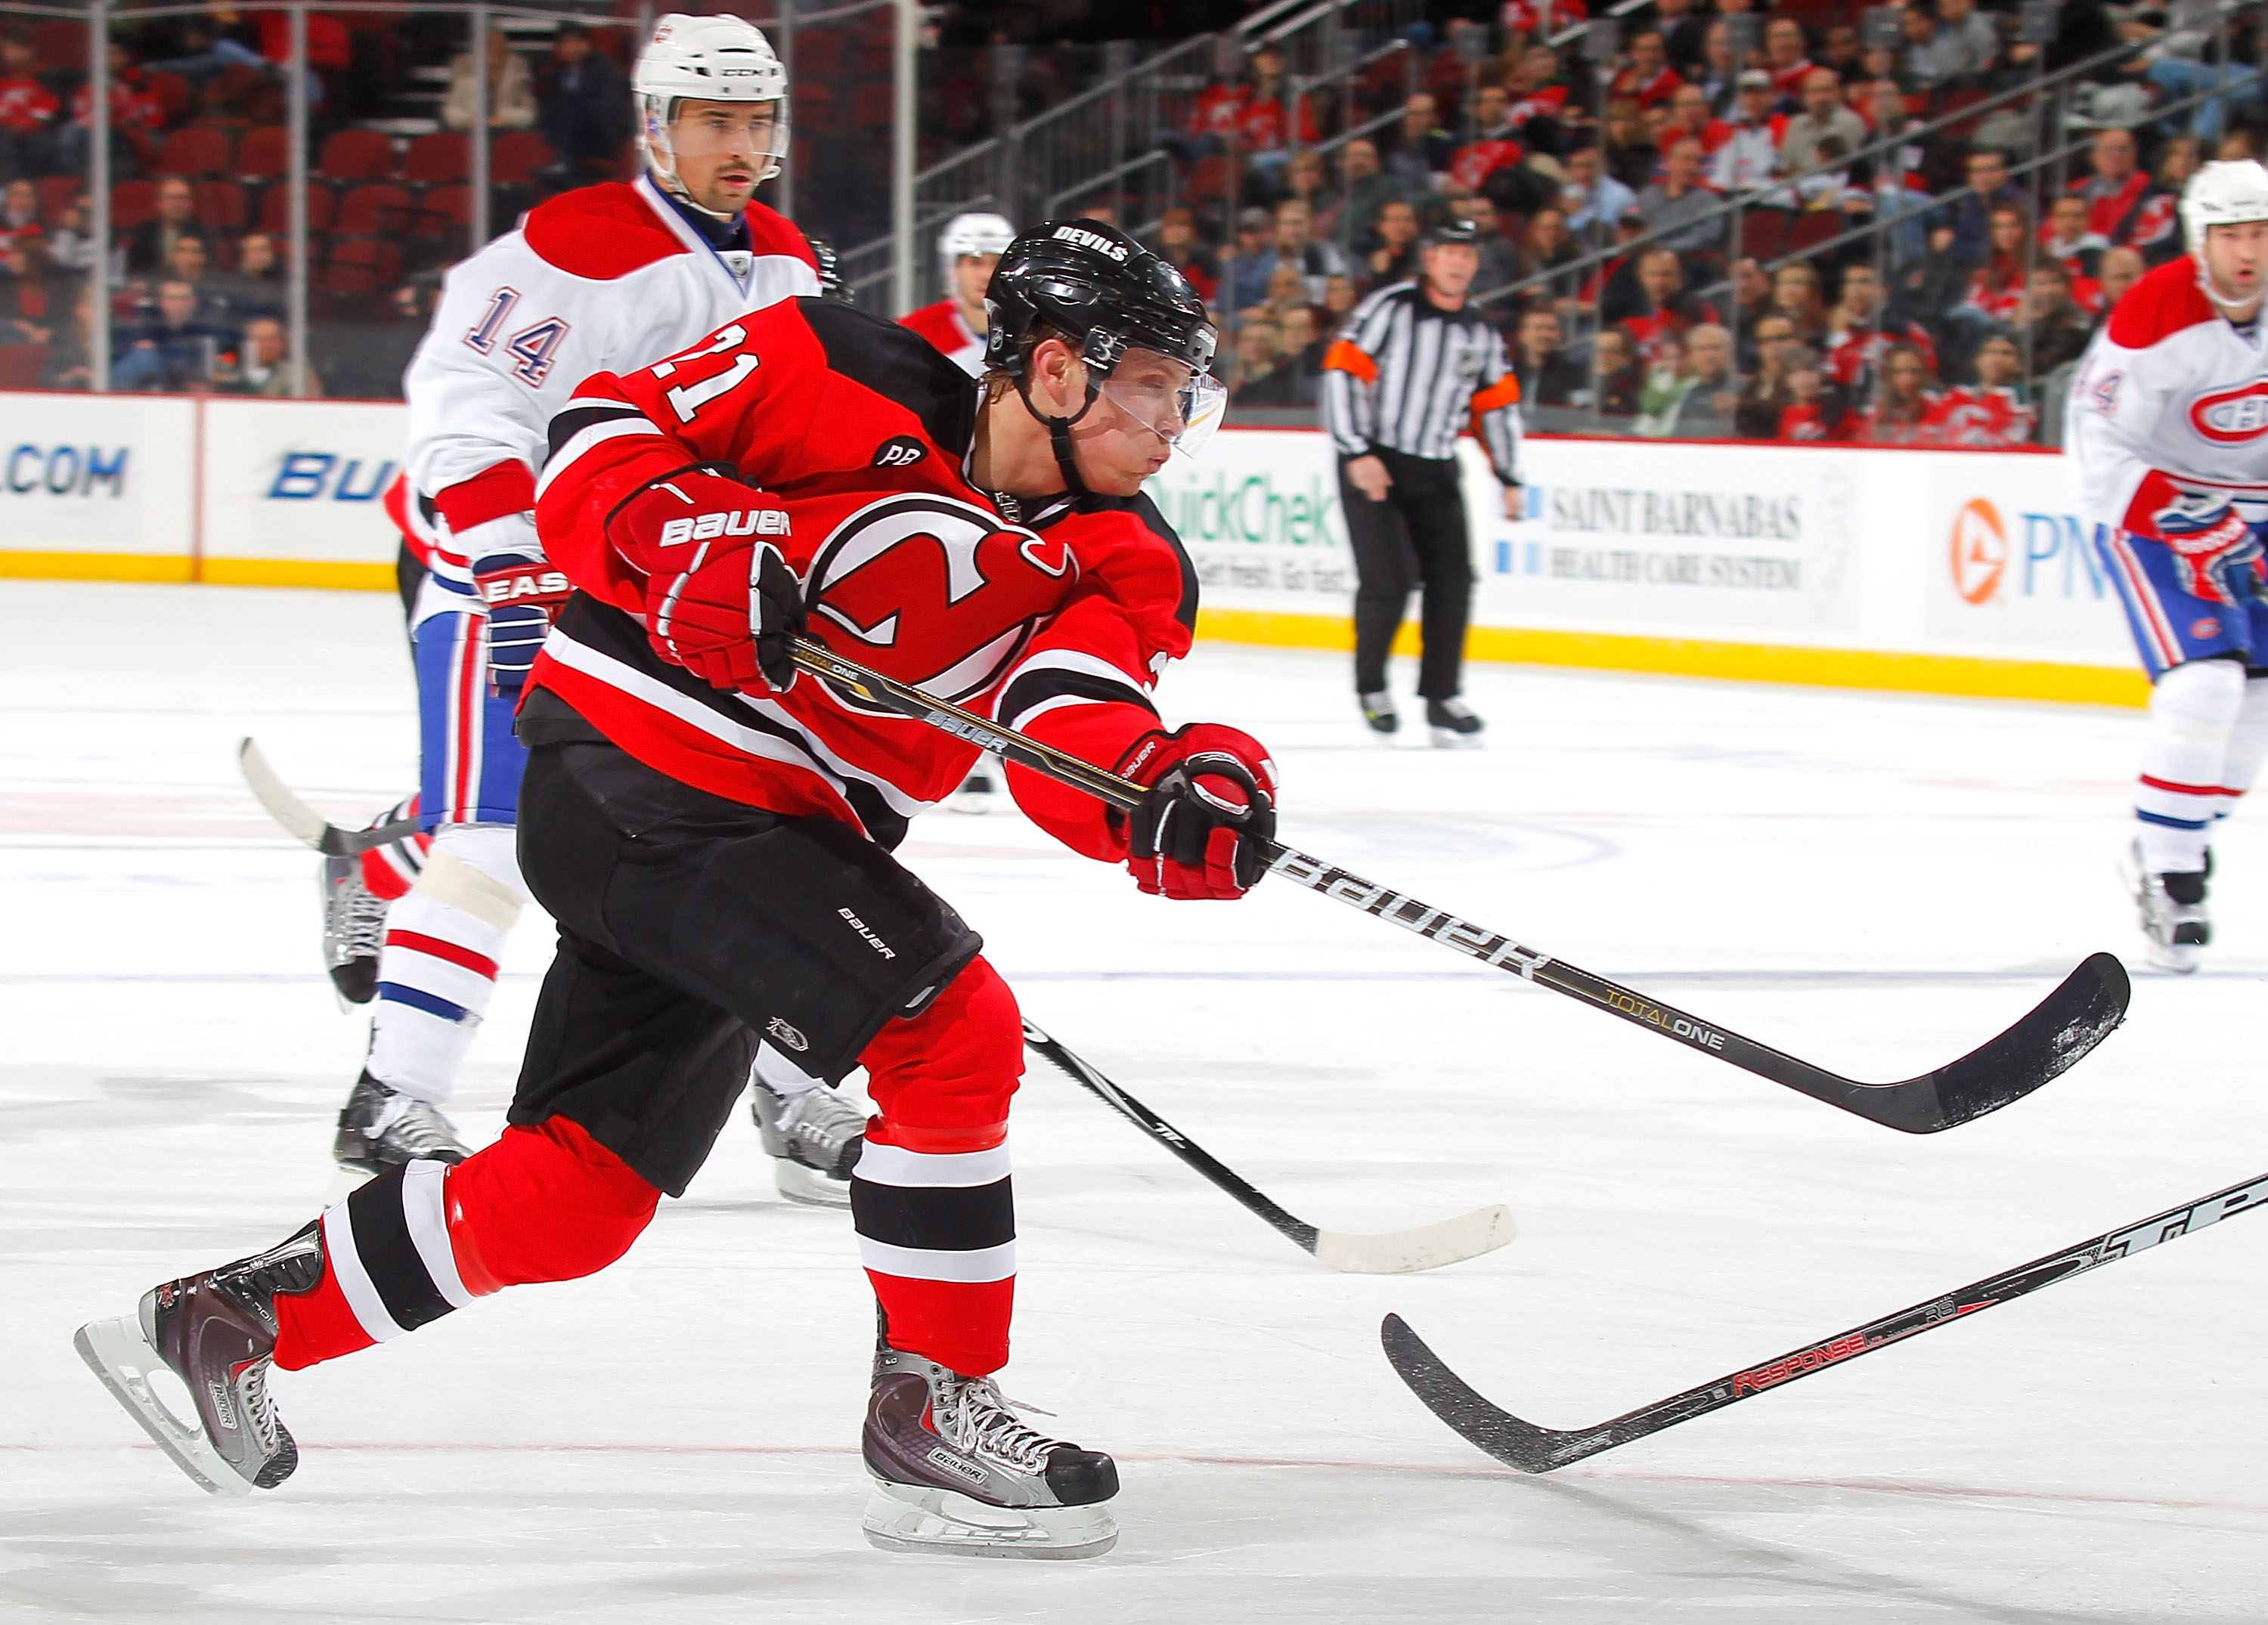 NEWARK, NJ - DECEMBER 02:  Mattias Tedenby #21 of the New Jersey Devils shoots during a hockey game against the Montreal Canadiens at the Prudential Center on December 2, 2010 in Newark, New Jersey.  (Photo by Paul Bereswill/Getty Images)